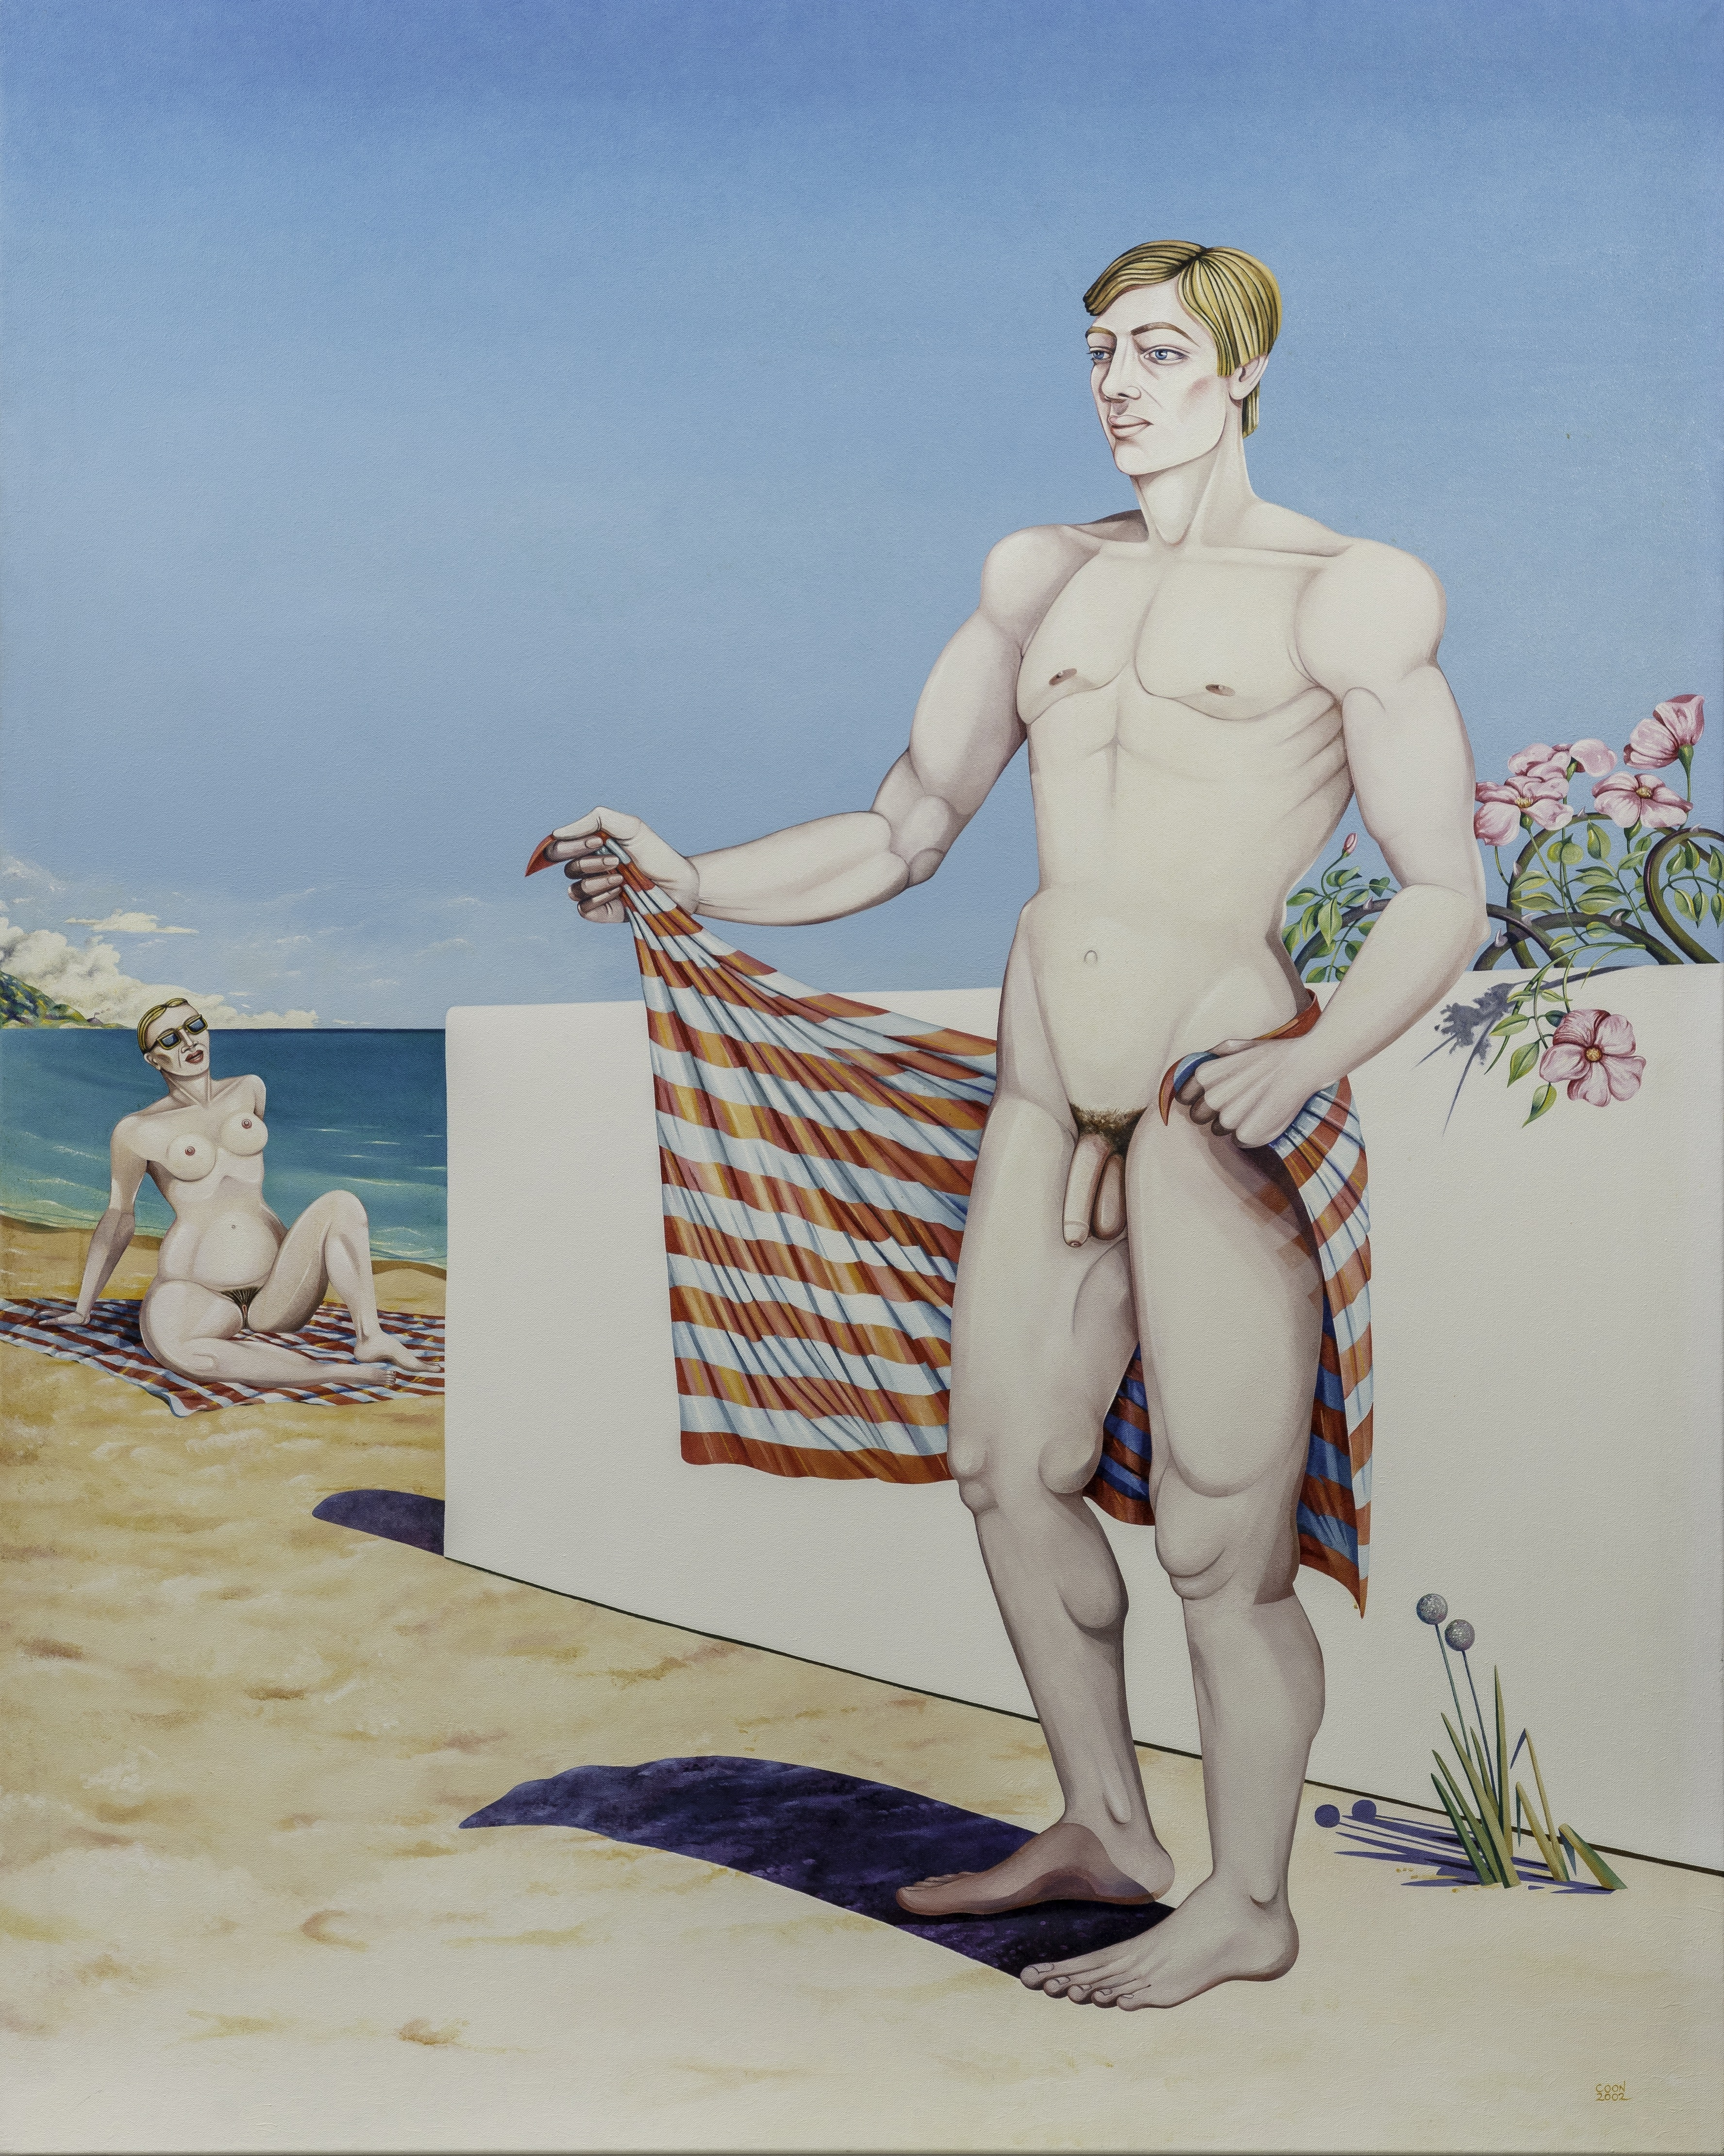 Caroline Coon, <em>See, He is Absolutely Gorgeous!</em> (2002), oil on canvas 152 x 122 cm. Courtesy the artist and TRAMPS New York and London. Photo: Richard Ivey.